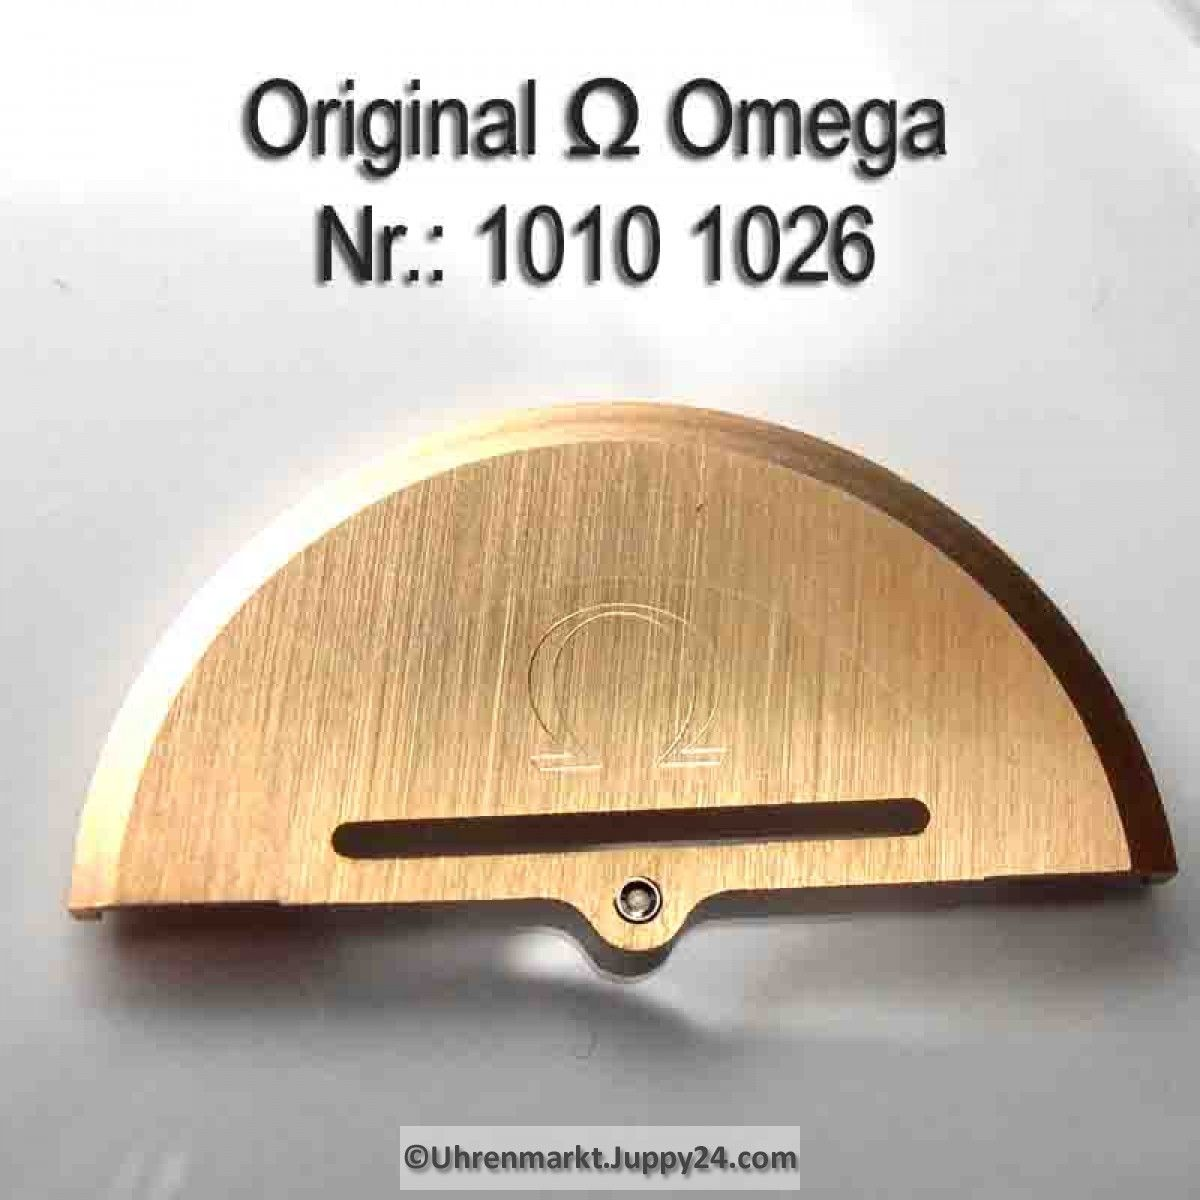 Omega Rotor NEU aus Lagerbestand Part Nr. Omega 1026 Cal. 1010 1011